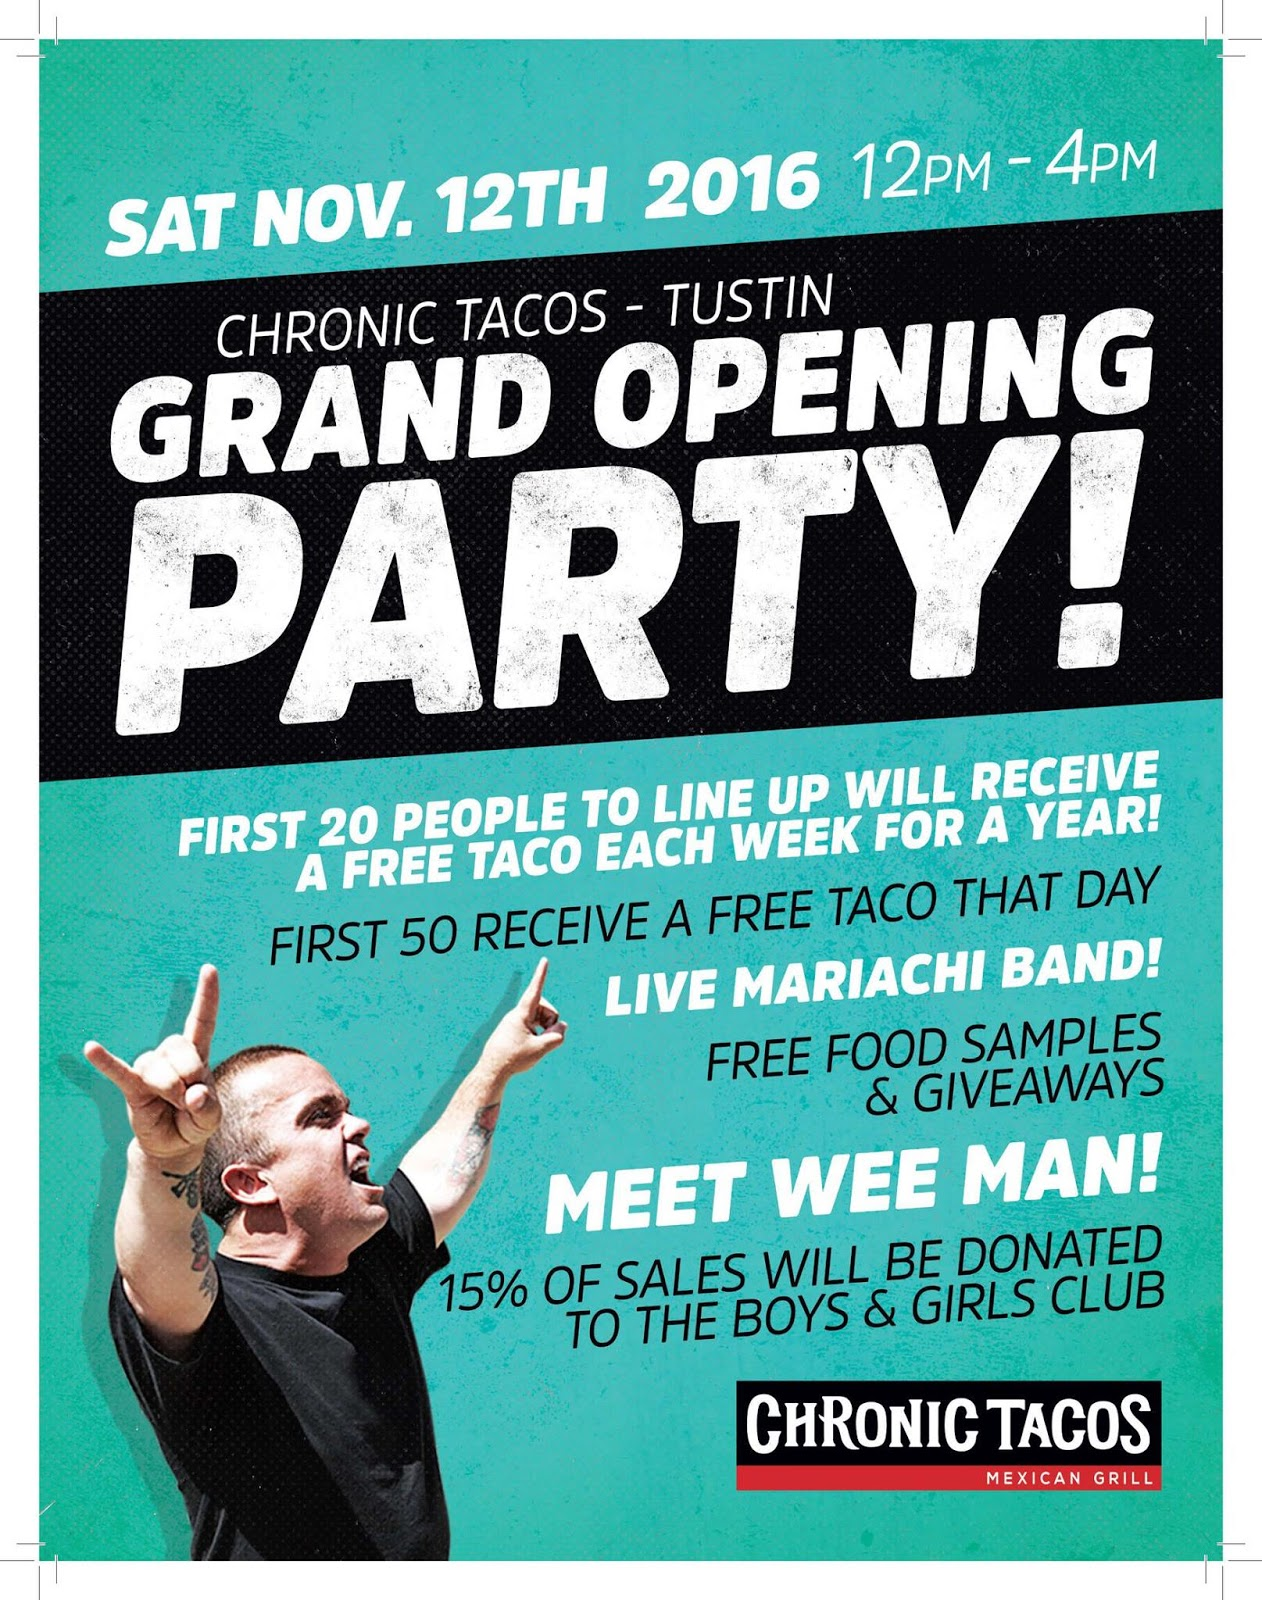 Nov. 12 | Free Tacos For A Year? Celebrate the Official Grand Opening of Chronic Tacos in Tustin!